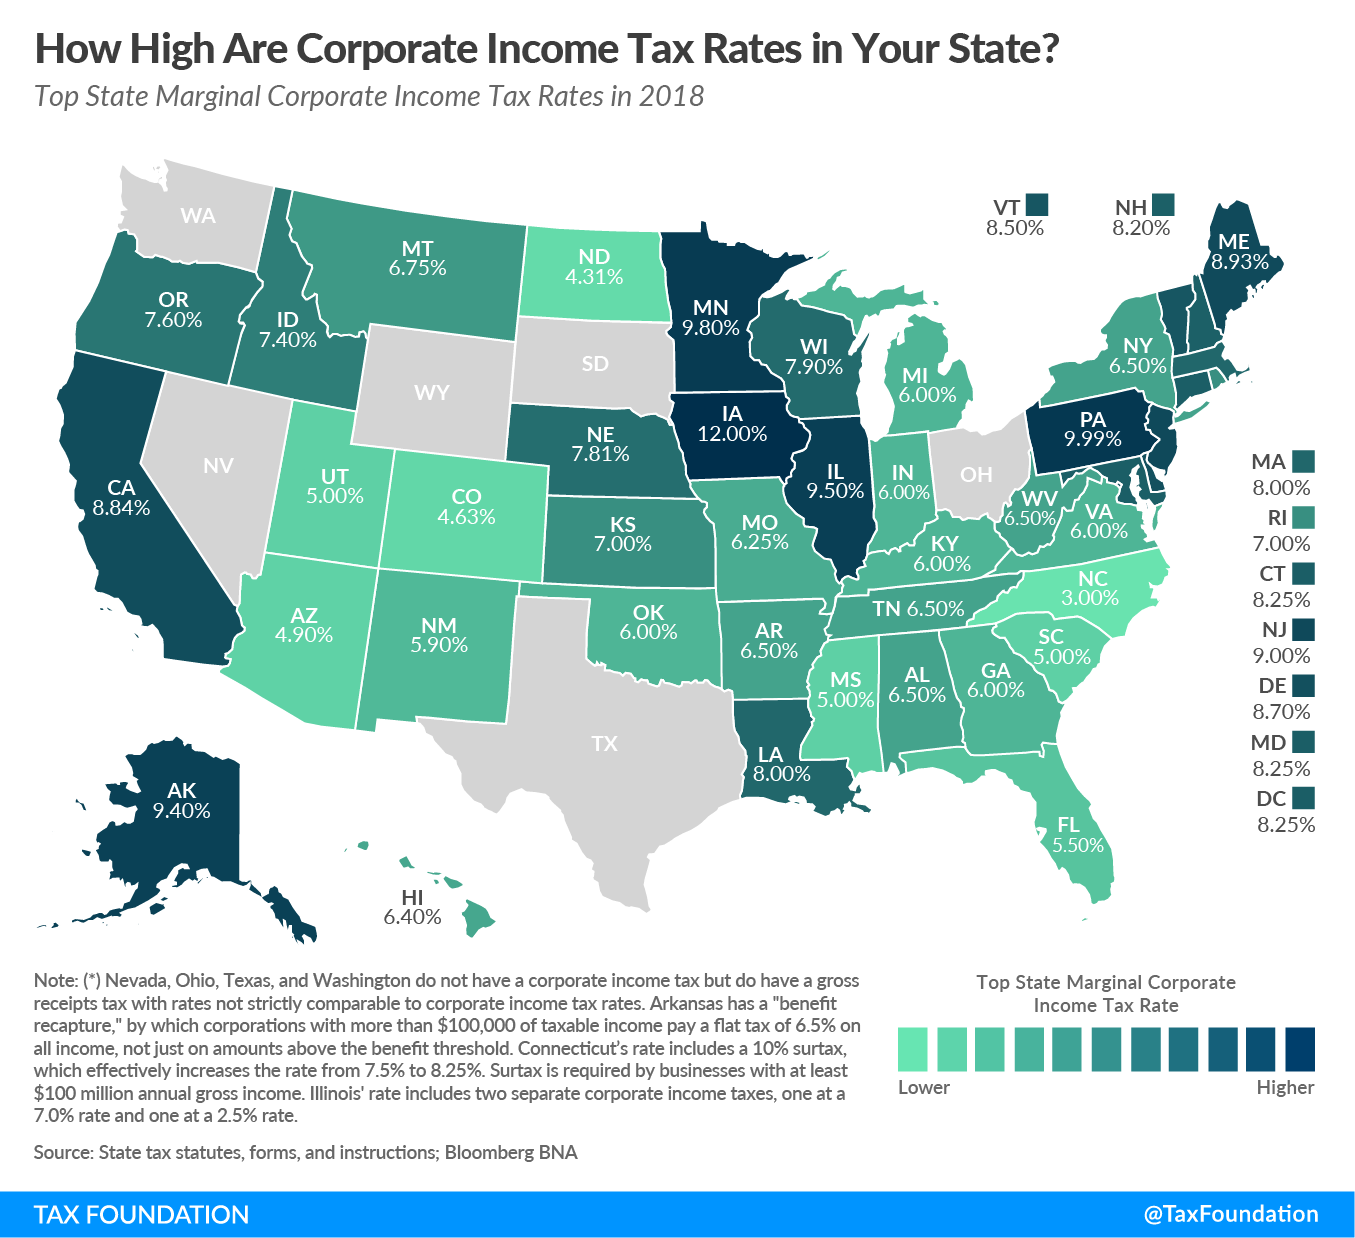 State Corporate Income Tax Rates and Brackets, 2018